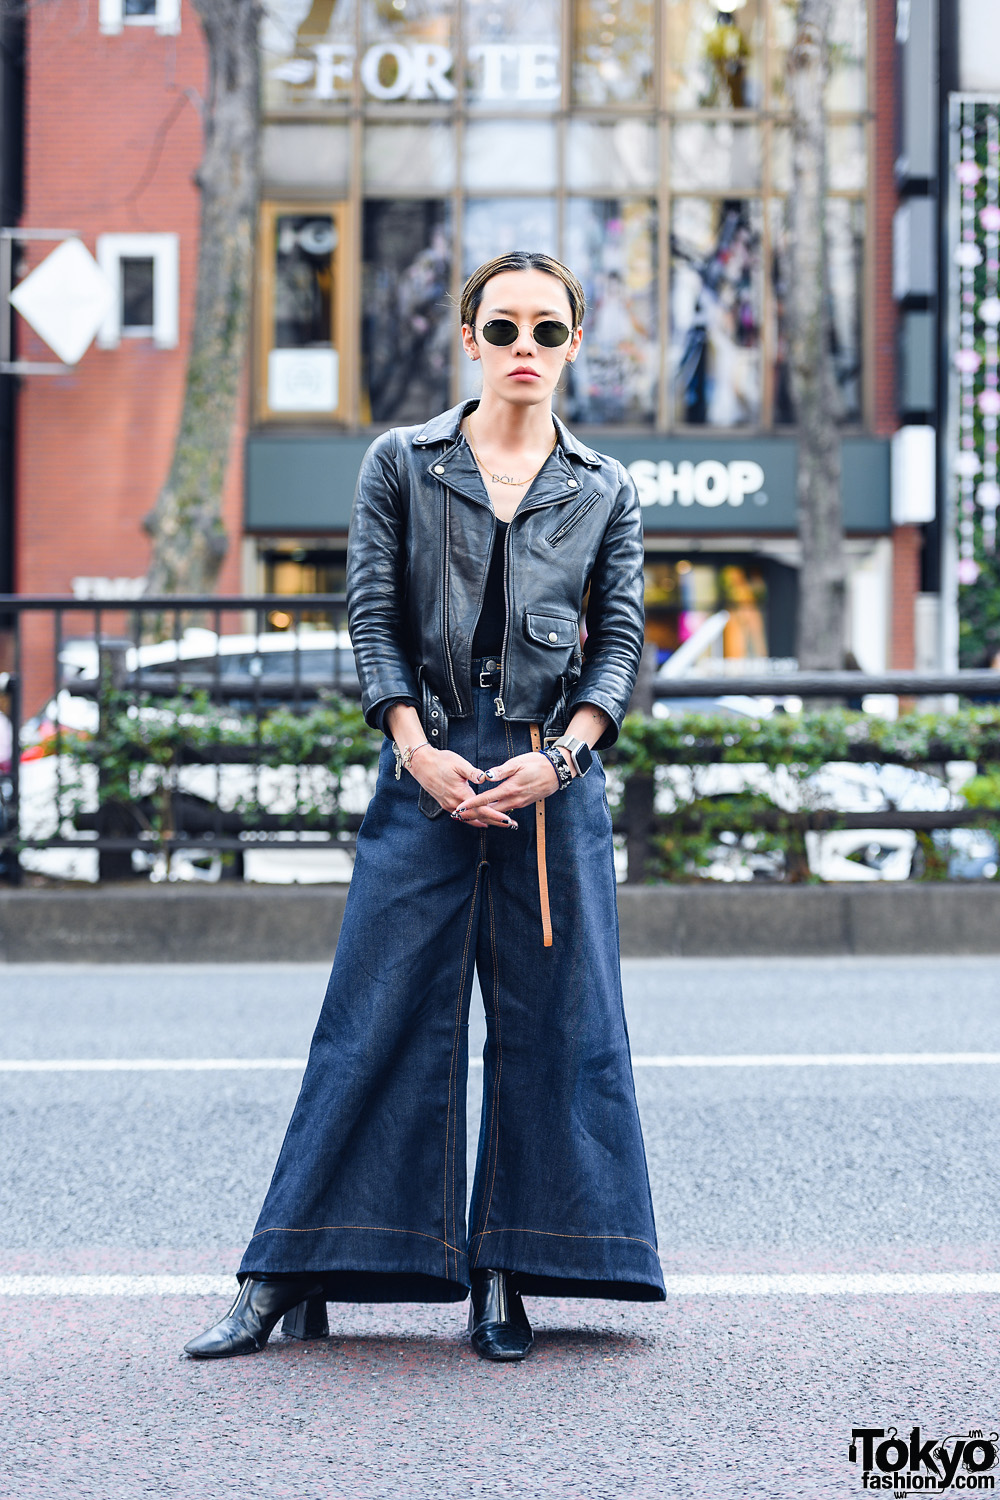 Anrealage Japan Street Style w/ Sunglasses, Beautiful People Biker Jacket, Anrealage Denim Flared Pants & Pointy Leather Boots